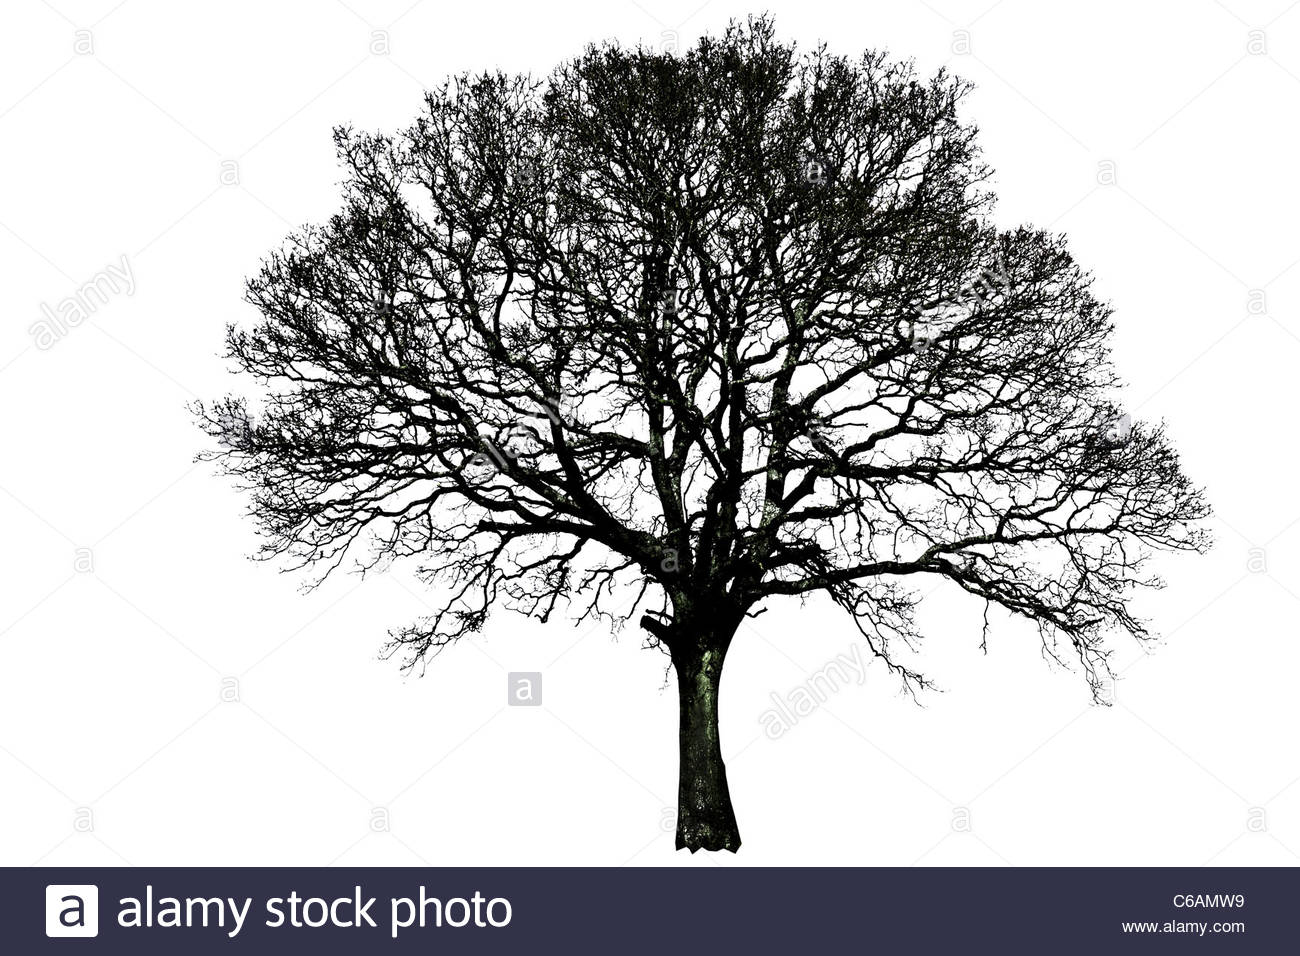 1300x956 Tree silhouette single black and white line isolated remote alone